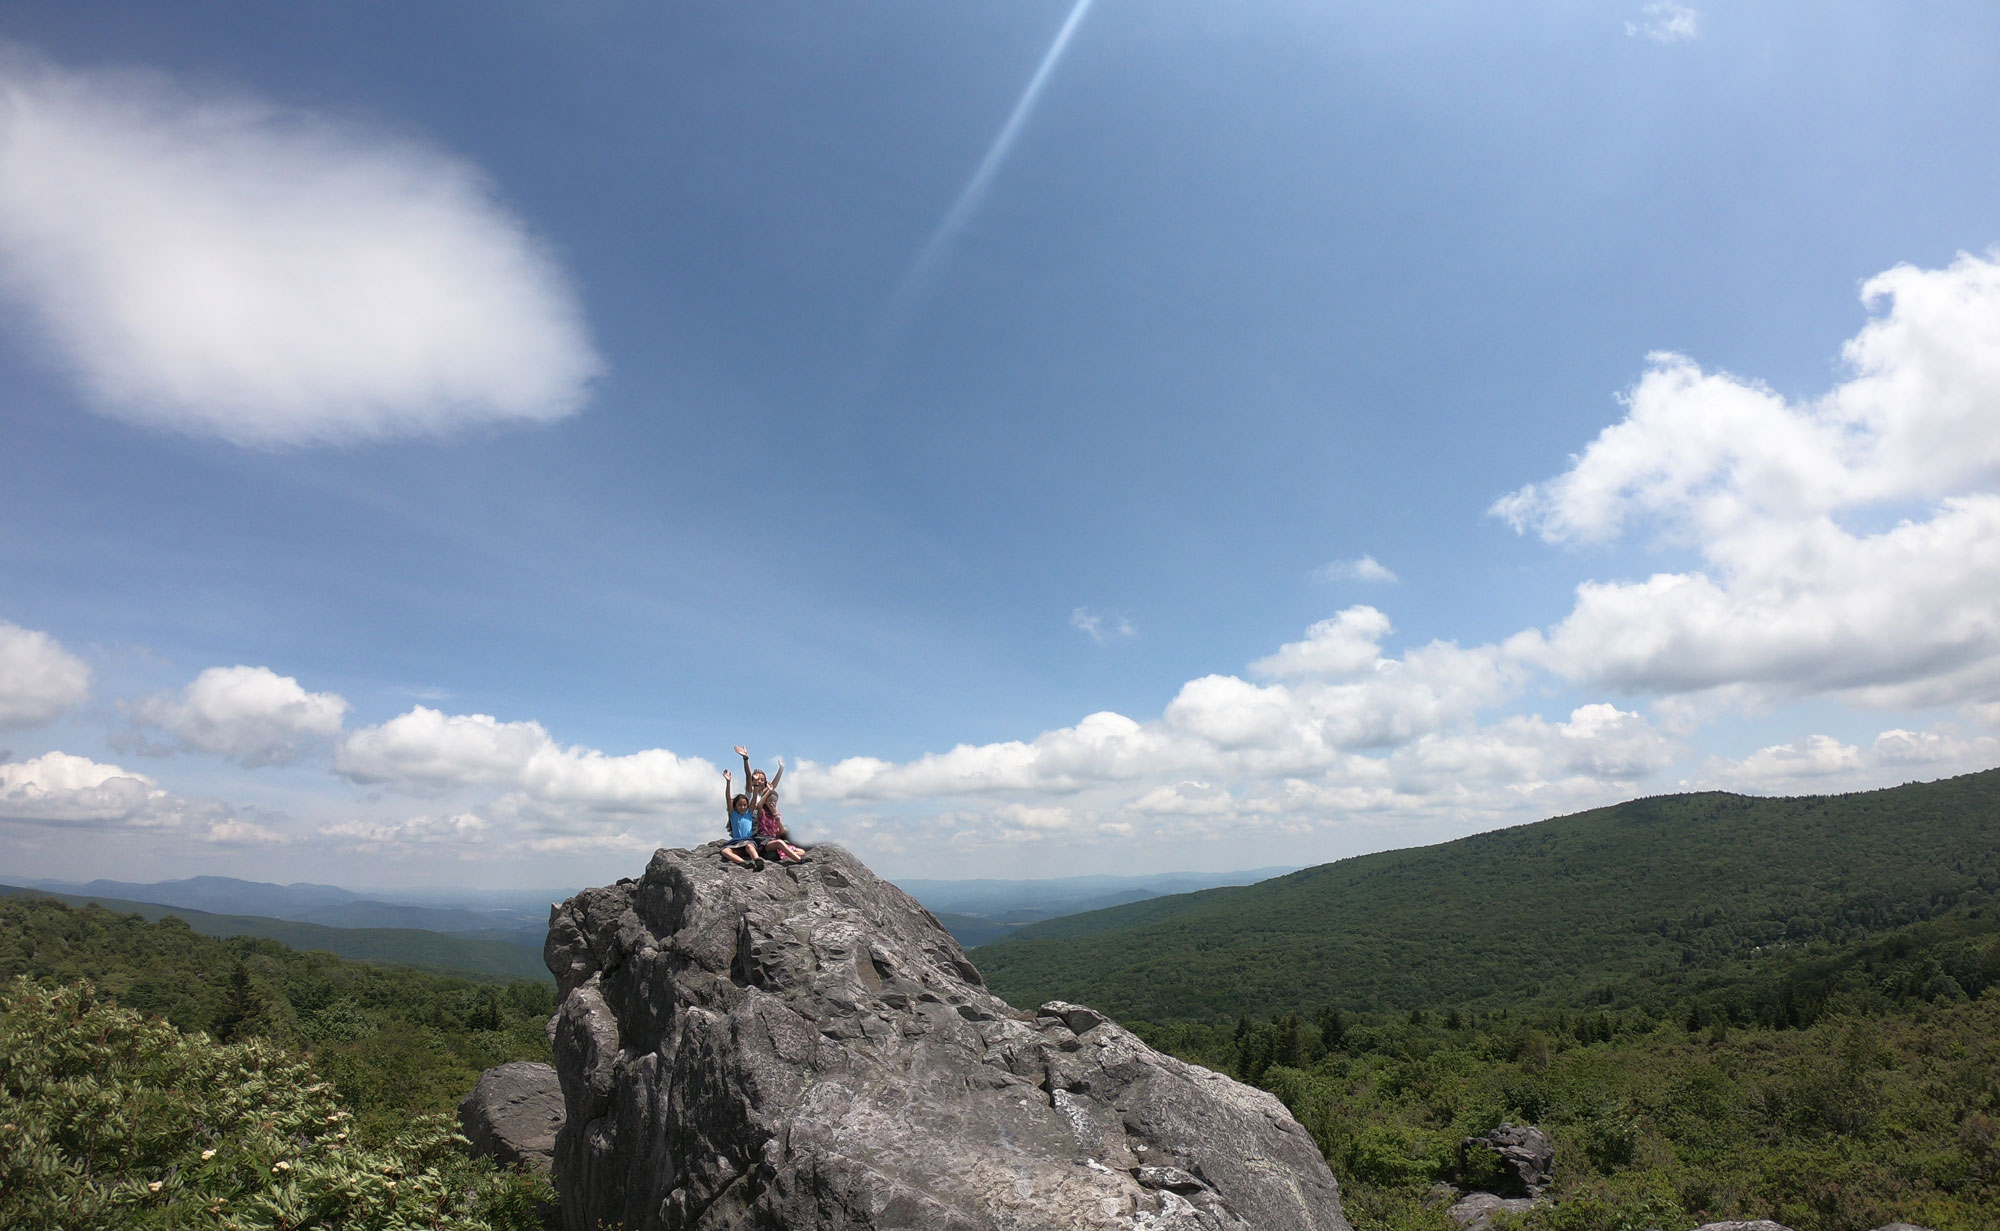 kids raising their hands on the boulder summit while camping and hiking at Grayson Highlands State Park, Virginia